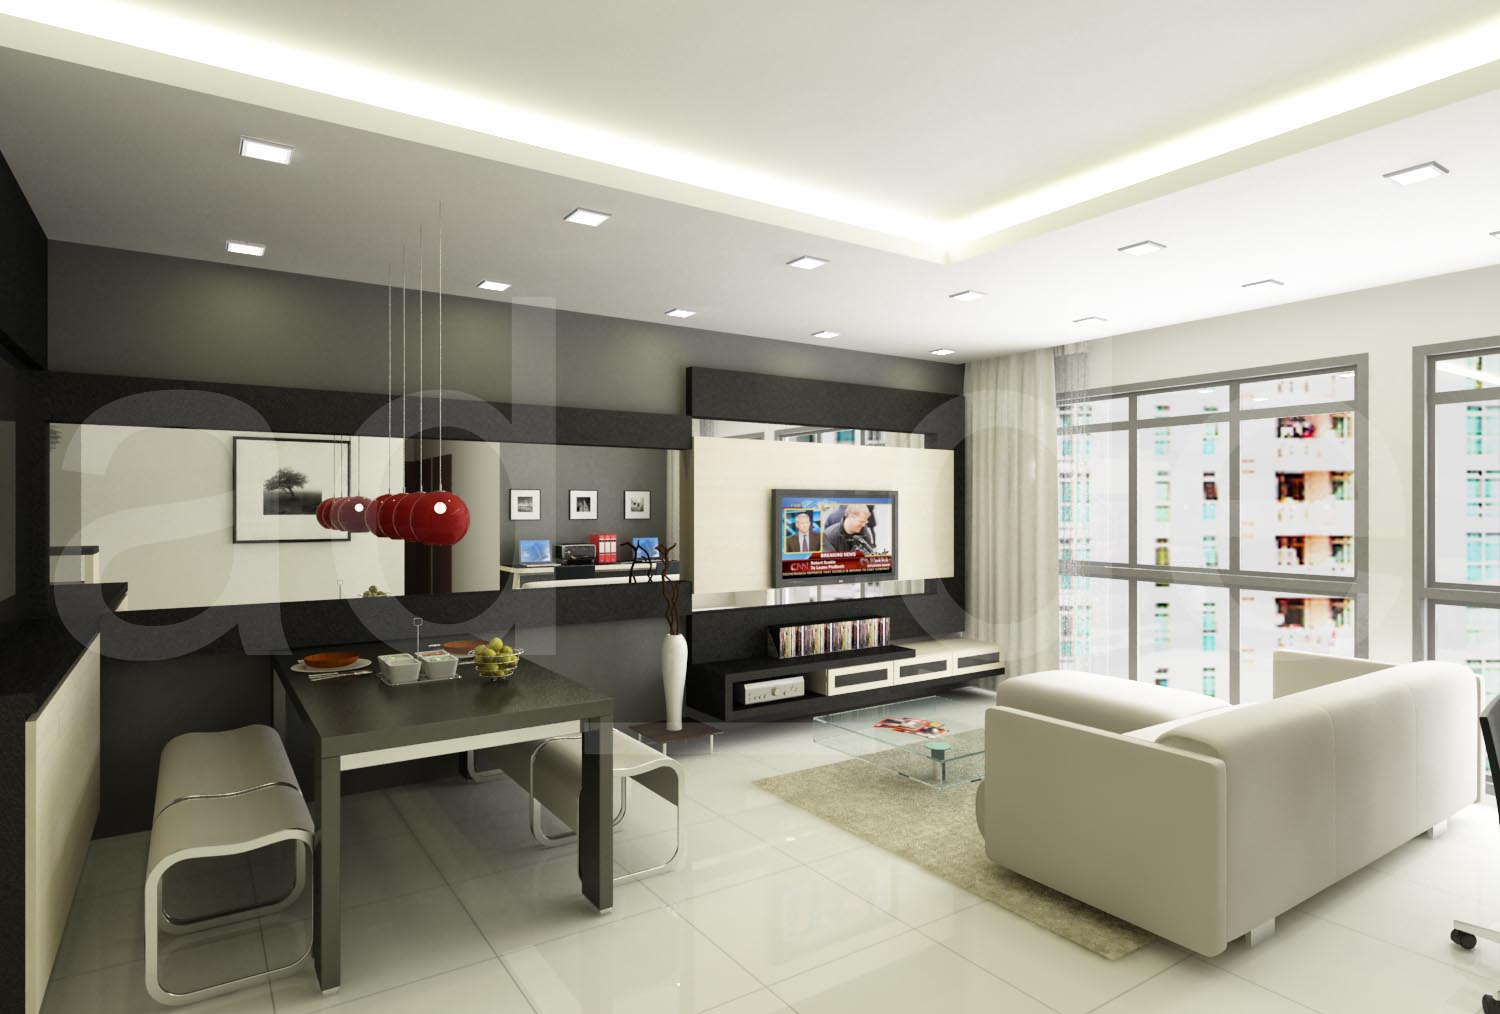 Top 5 Interior Design Company In Singapore